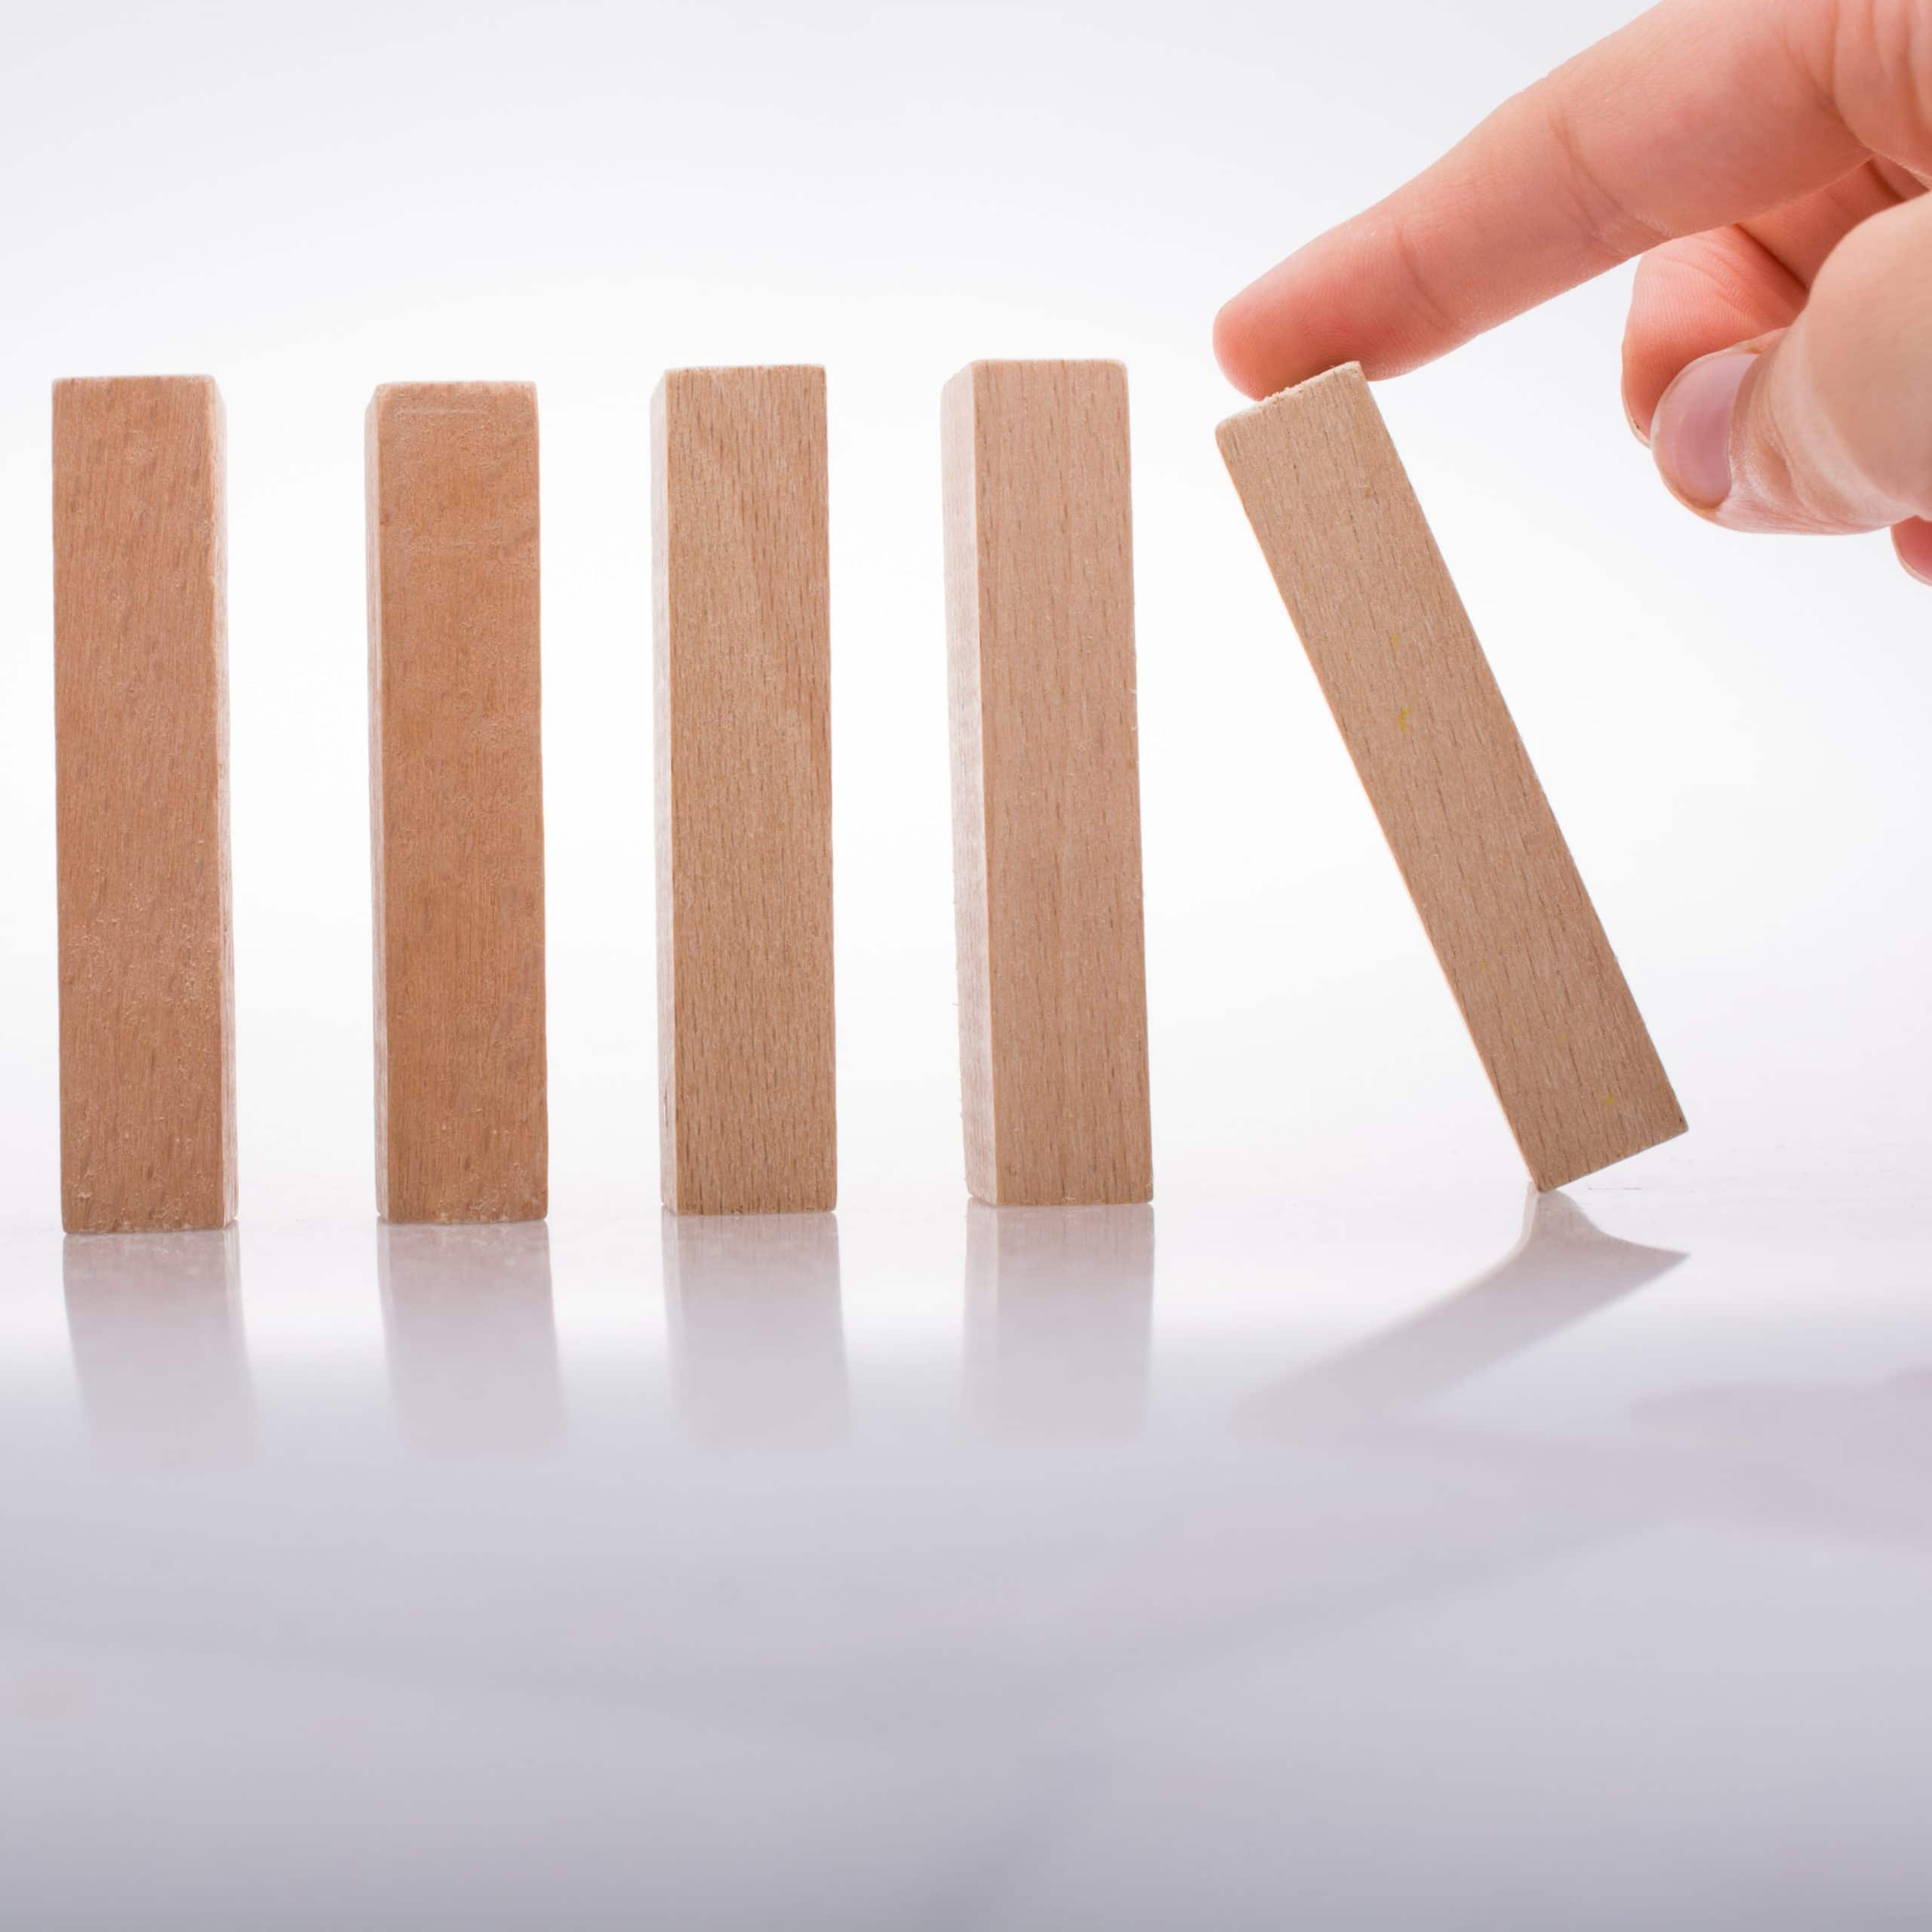 Business continuity planning represented by a hand holding wooden domino